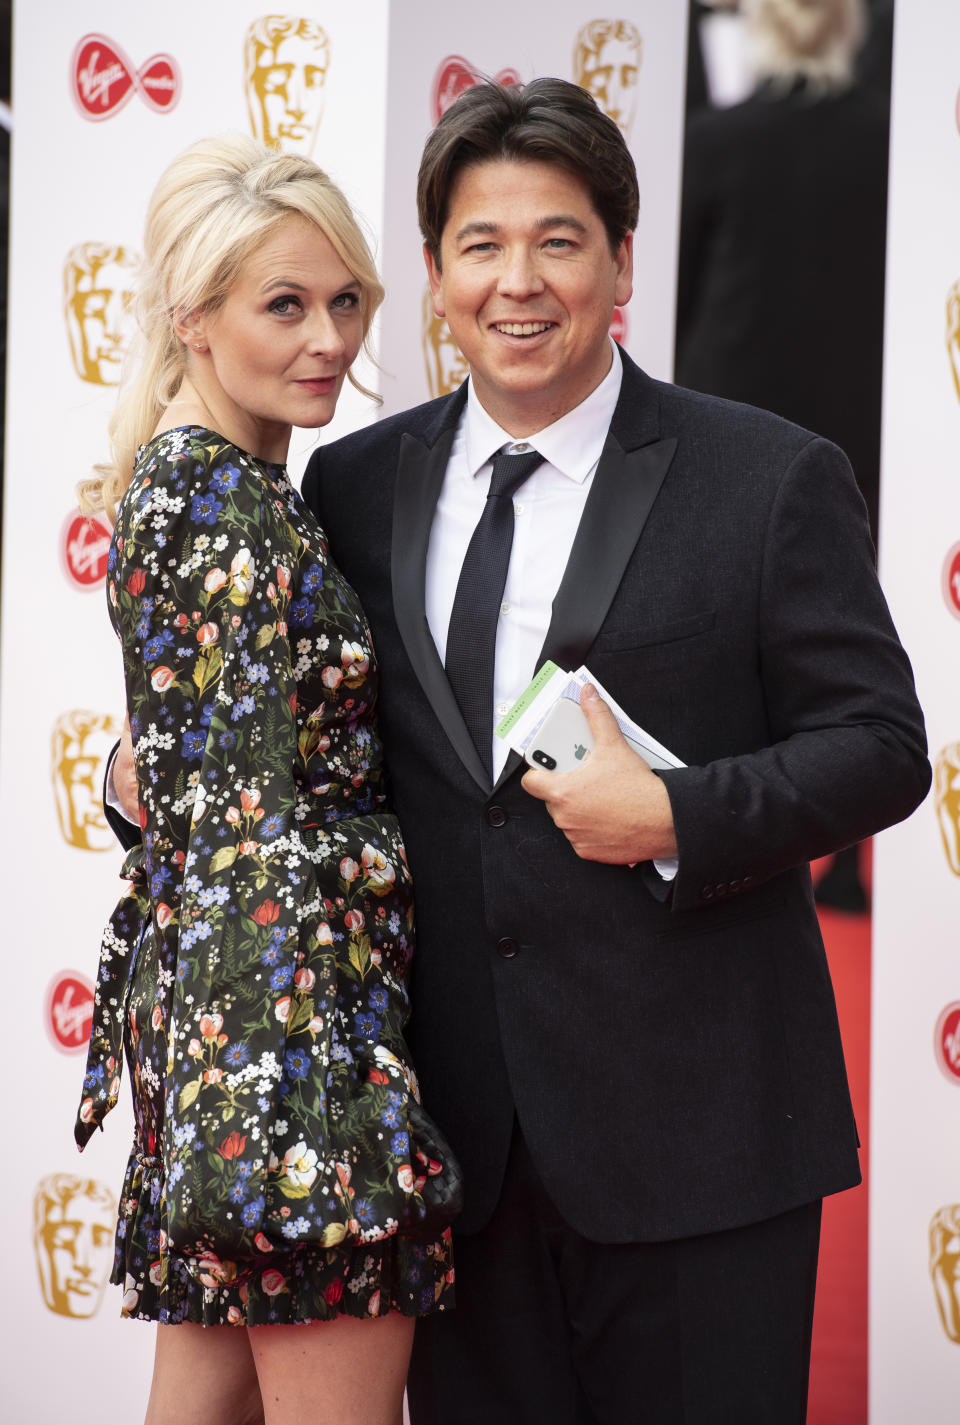 LONDON, UNITED KINGDOM - 2019/05/12: Michael McIntyre and Kitty McIntyre are seen on the red carpet during the Virgin Media British Academy Television Awards at The Royal Festival Hall in London. (Photo by Gary Mitchell/SOPA Images/LightRocket via Getty Images)